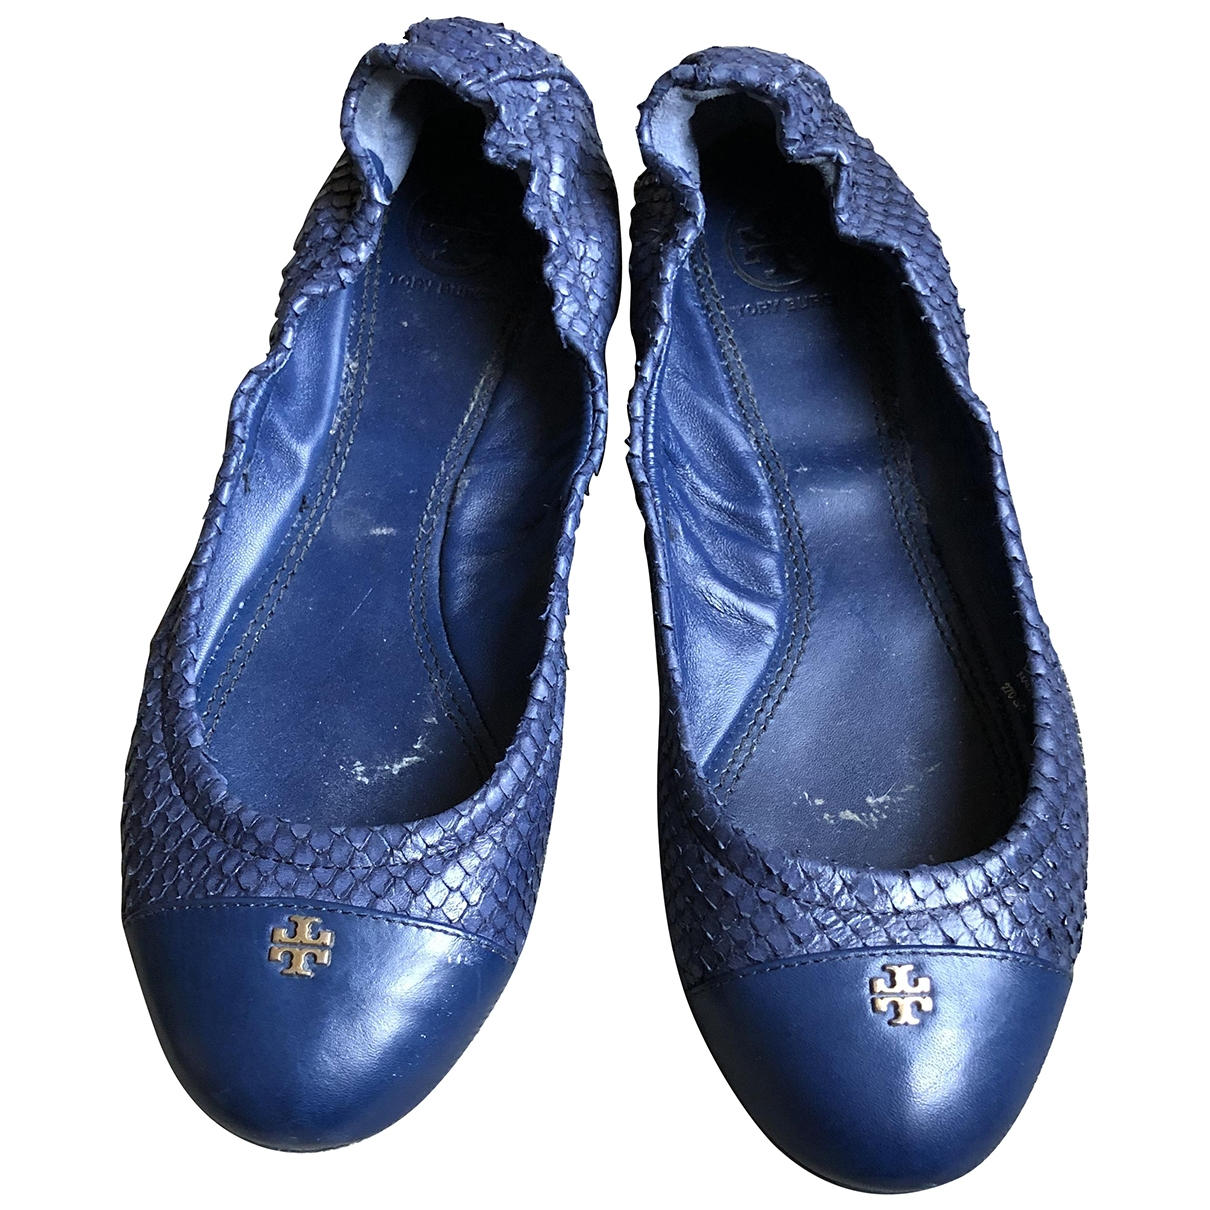 Tory Burch \N Blue Leather Ballet flats for Women 7 US